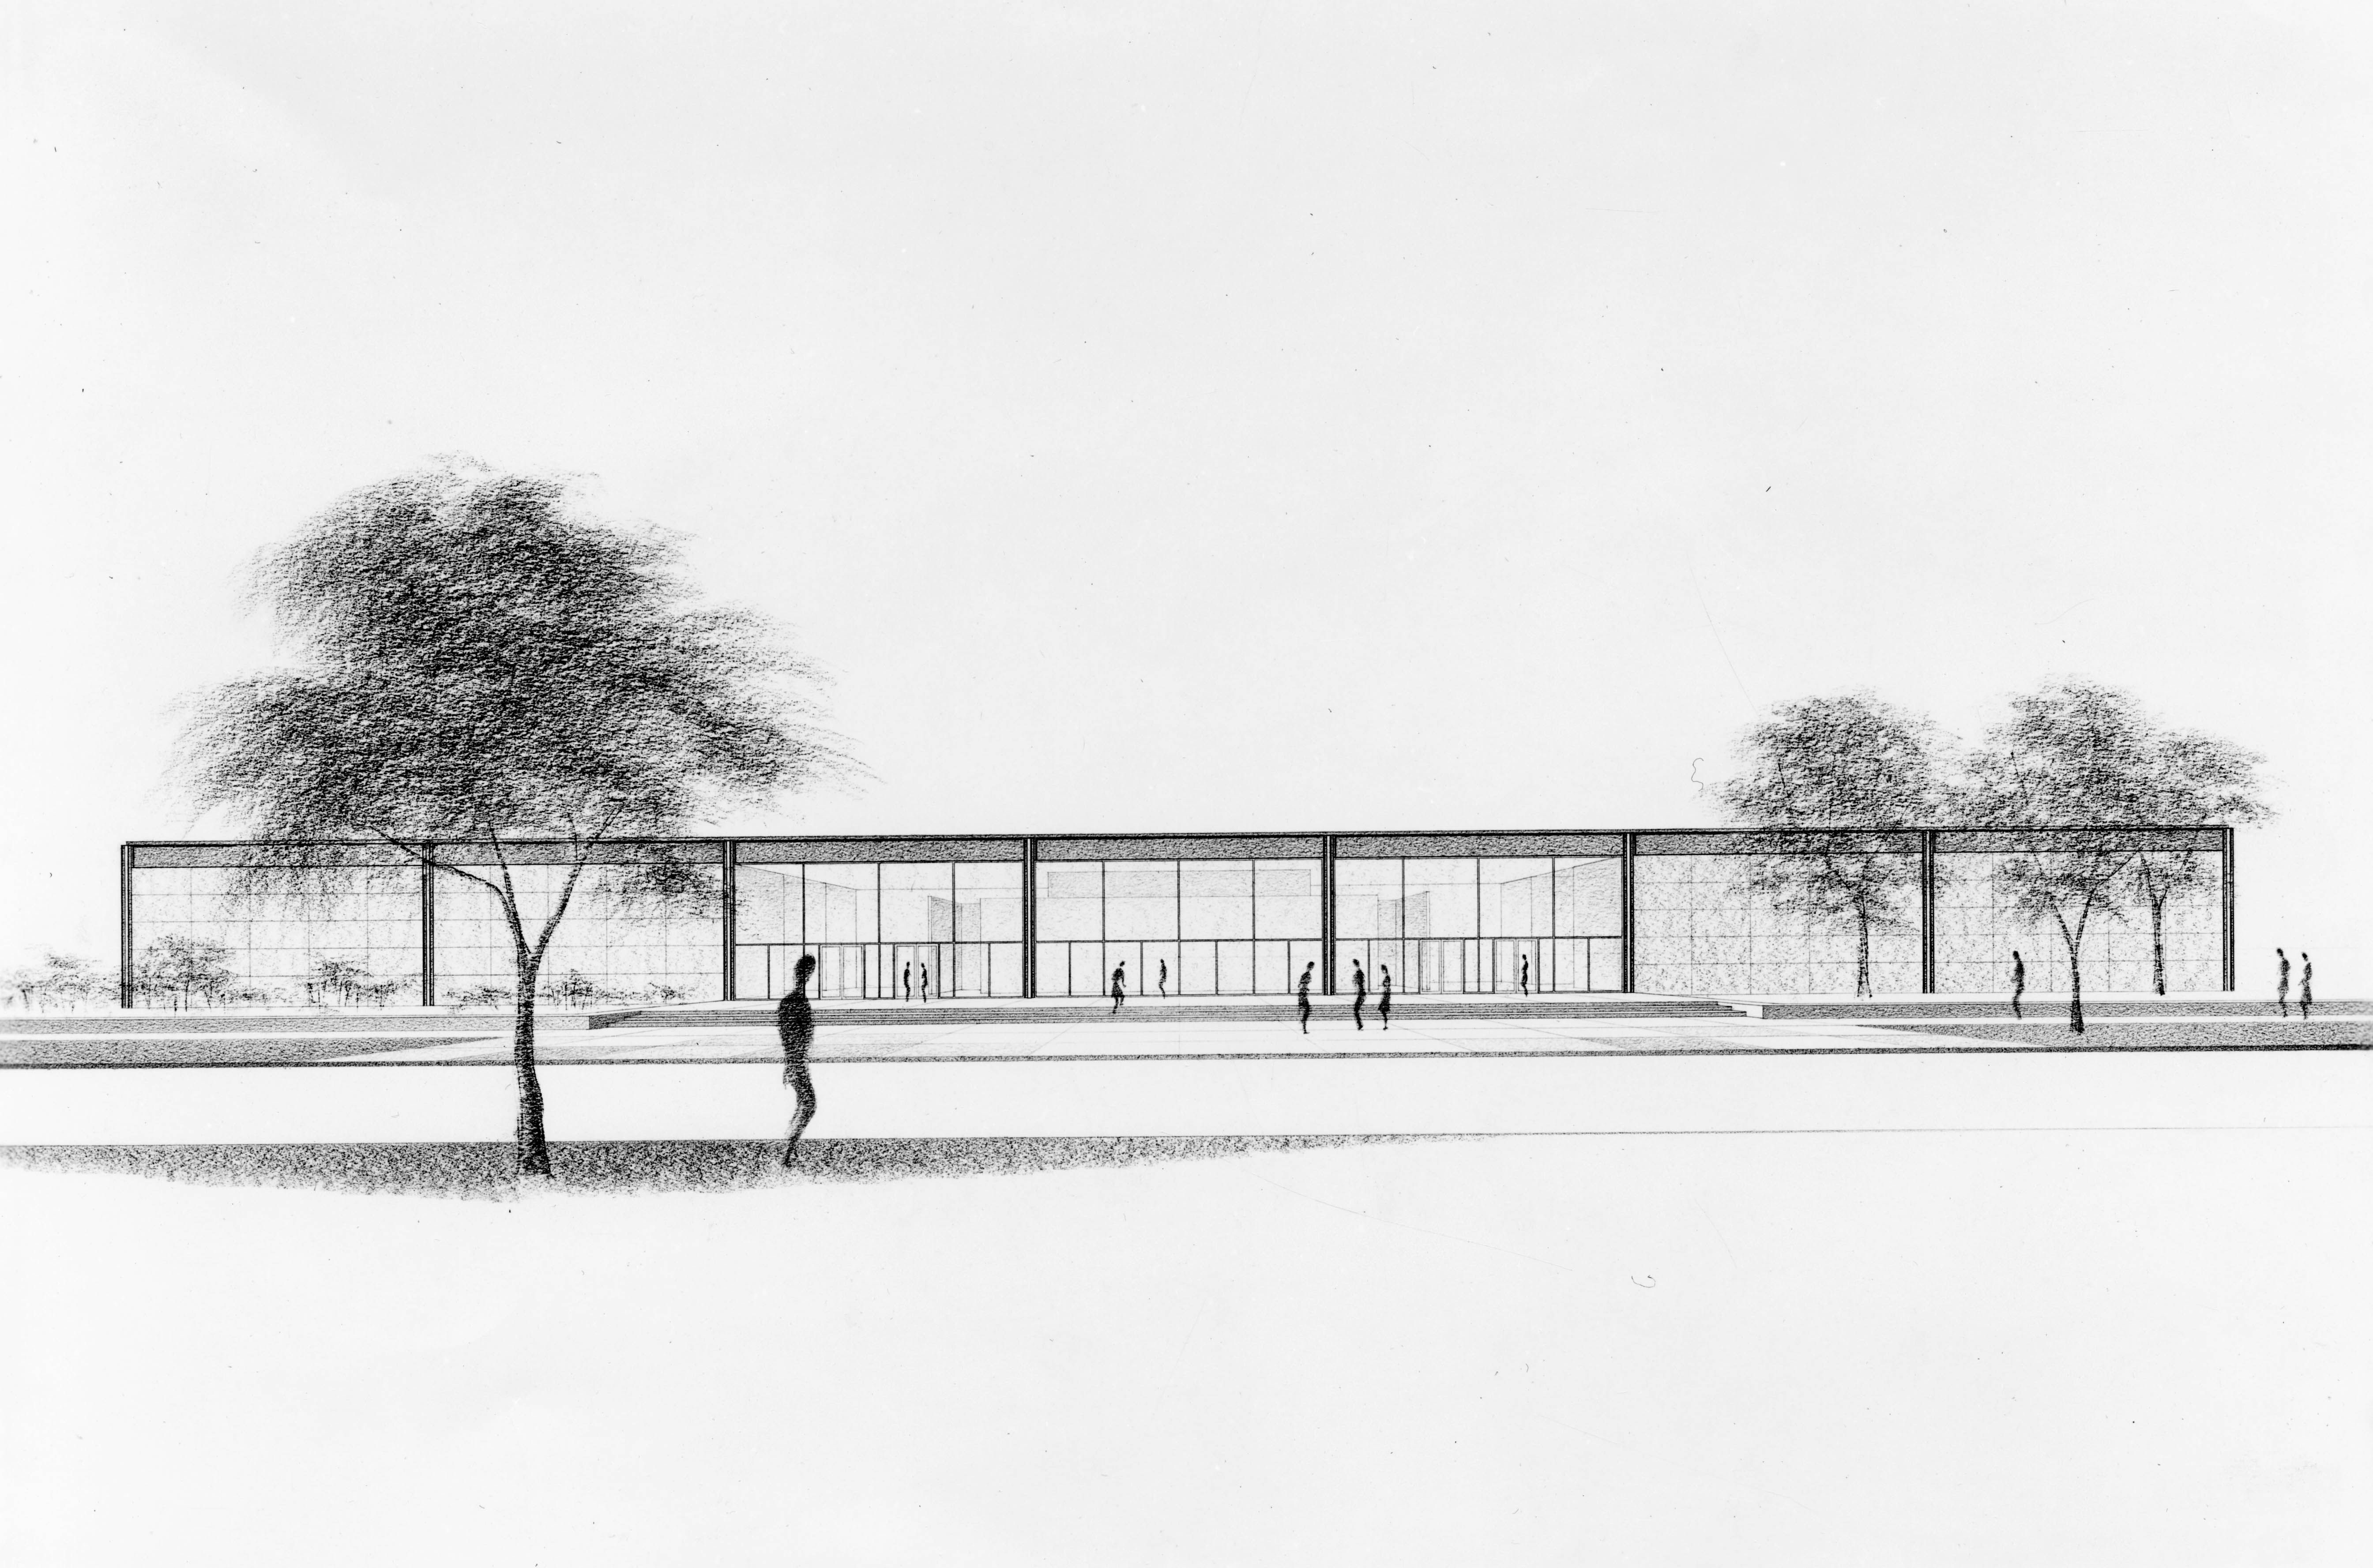 Farnsworth house by mies van der rohe exterior 8 jpg - Mies Van Der Rohe Respect The Architect Pinterest Architecture Architects And Ludwig Mies Van Der Rohe